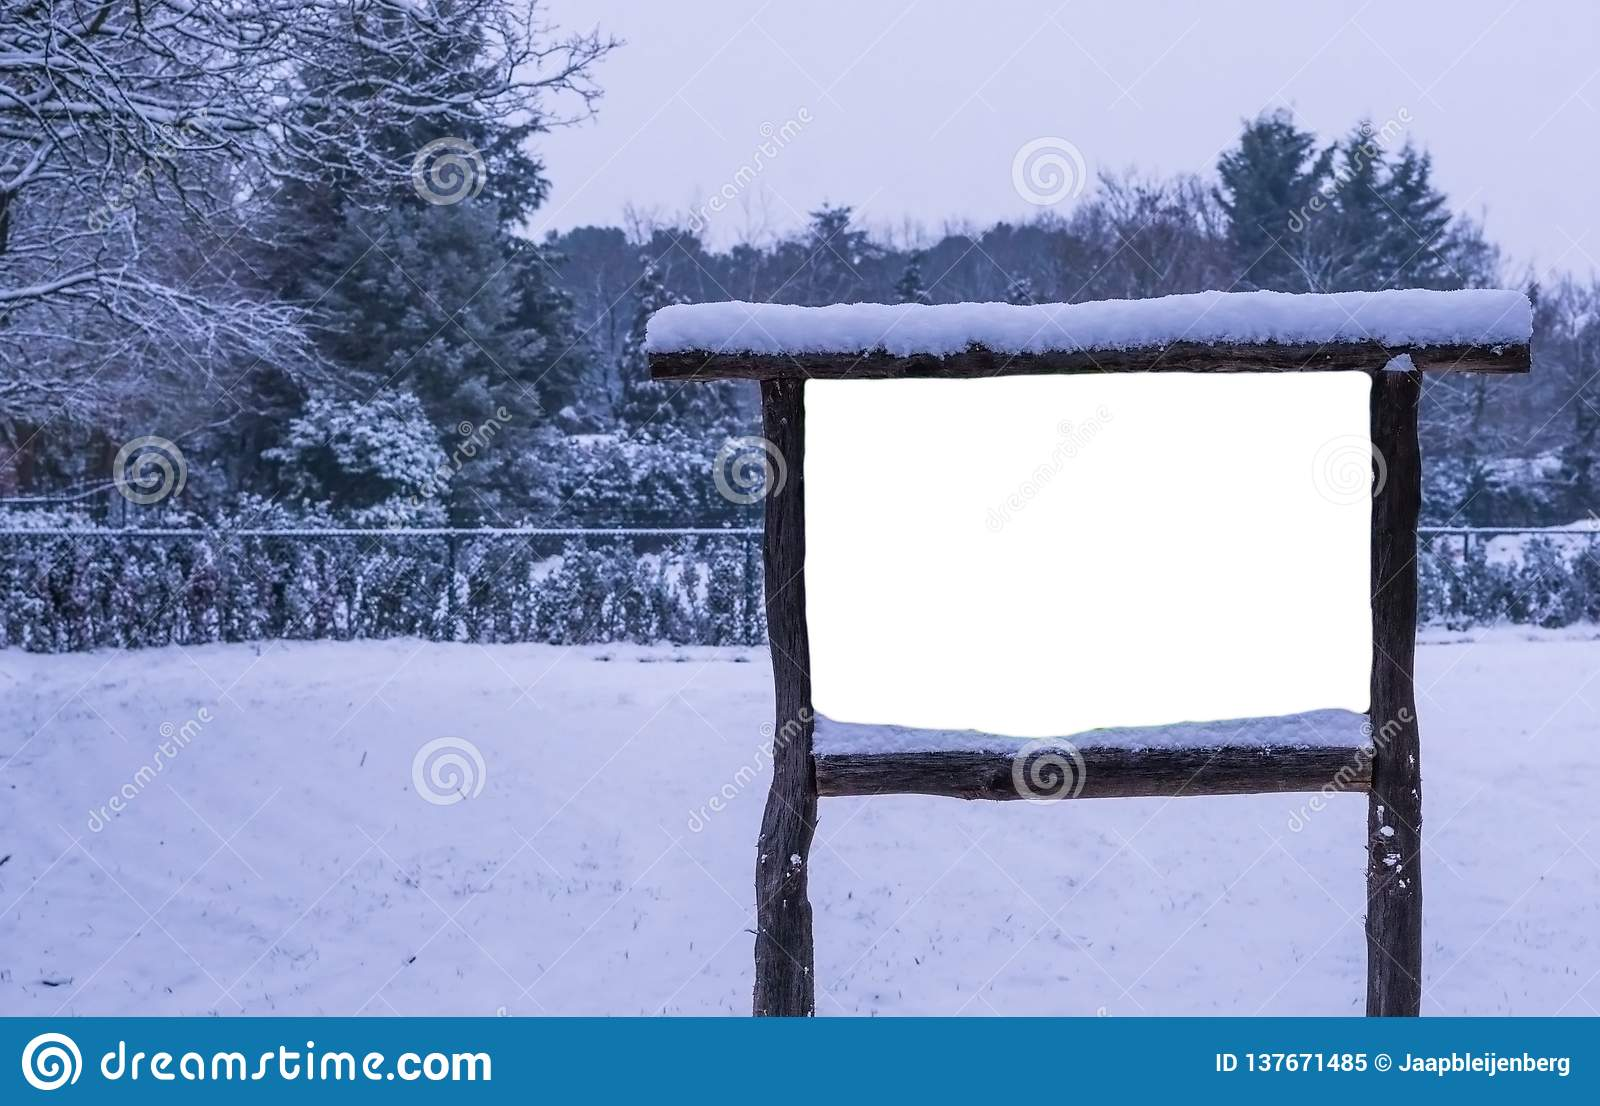 Empty and blank wooden advertisement board covered in snow, winter season in the forest, publicity billboard